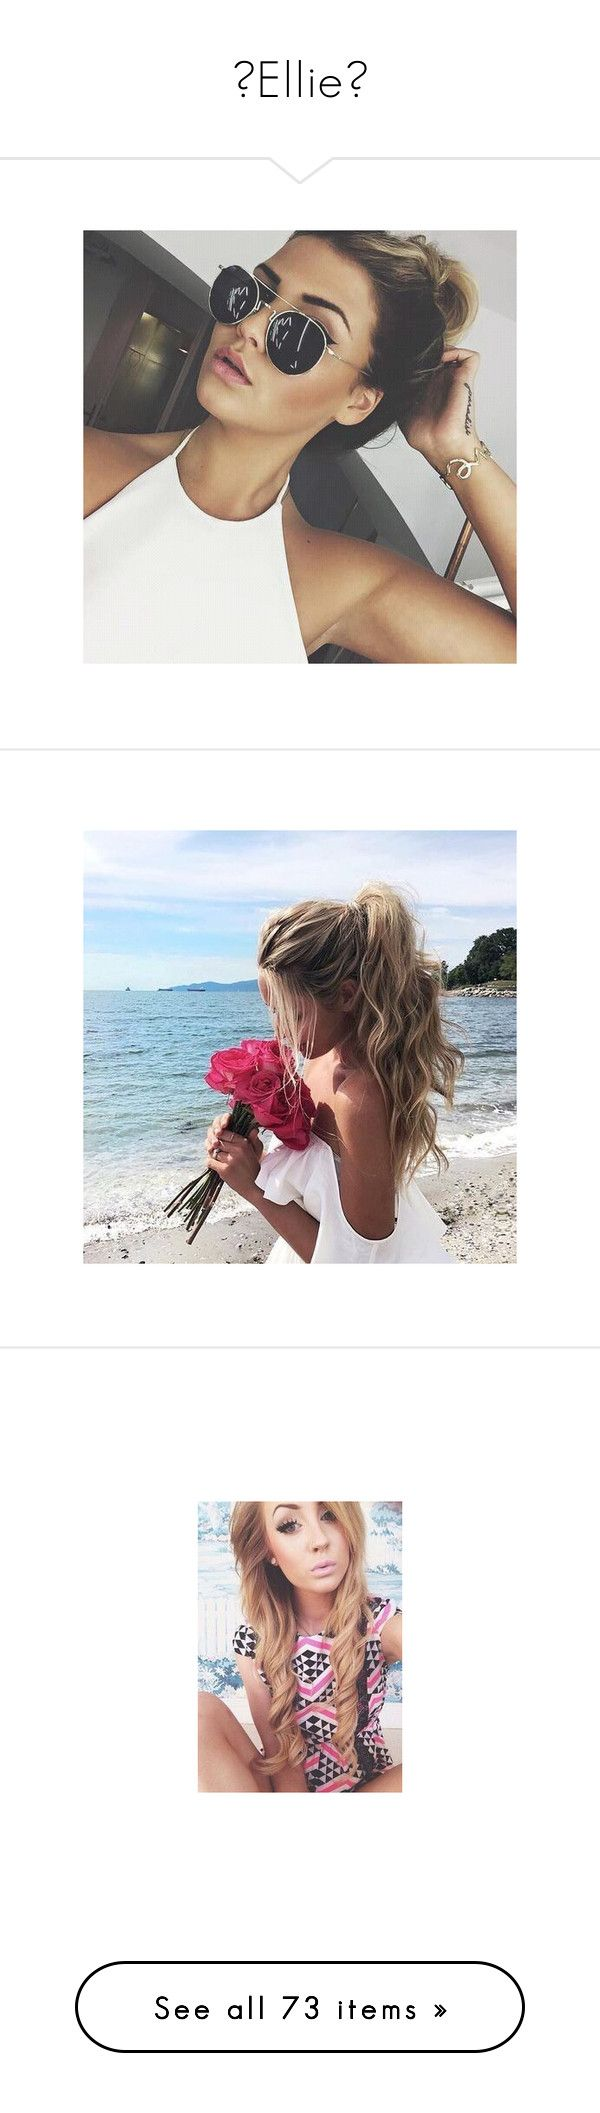 """""""💜Ellie💜"""" by amysykes-697 ❤ liked on Polyvore featuring icon pics, tops, brown tops, beach tops, flower top, aspen mansfield, accessories, aspen, girls and chloe"""